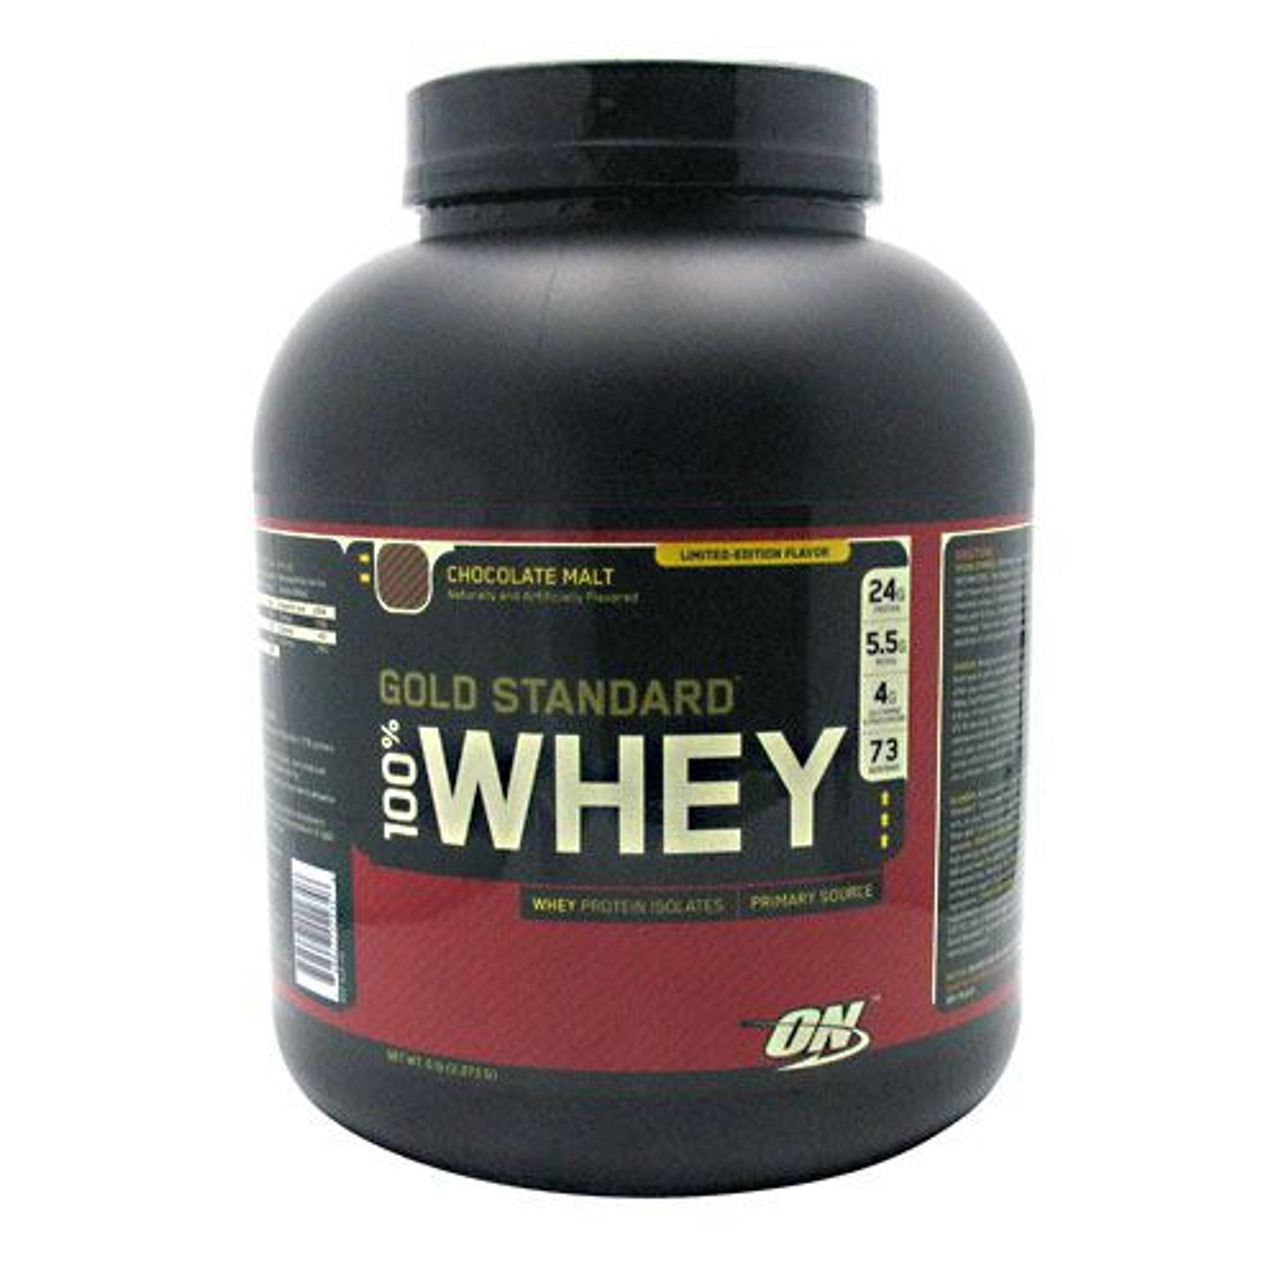 100% Whey Gold Standard 5lb Optimum Nutrition